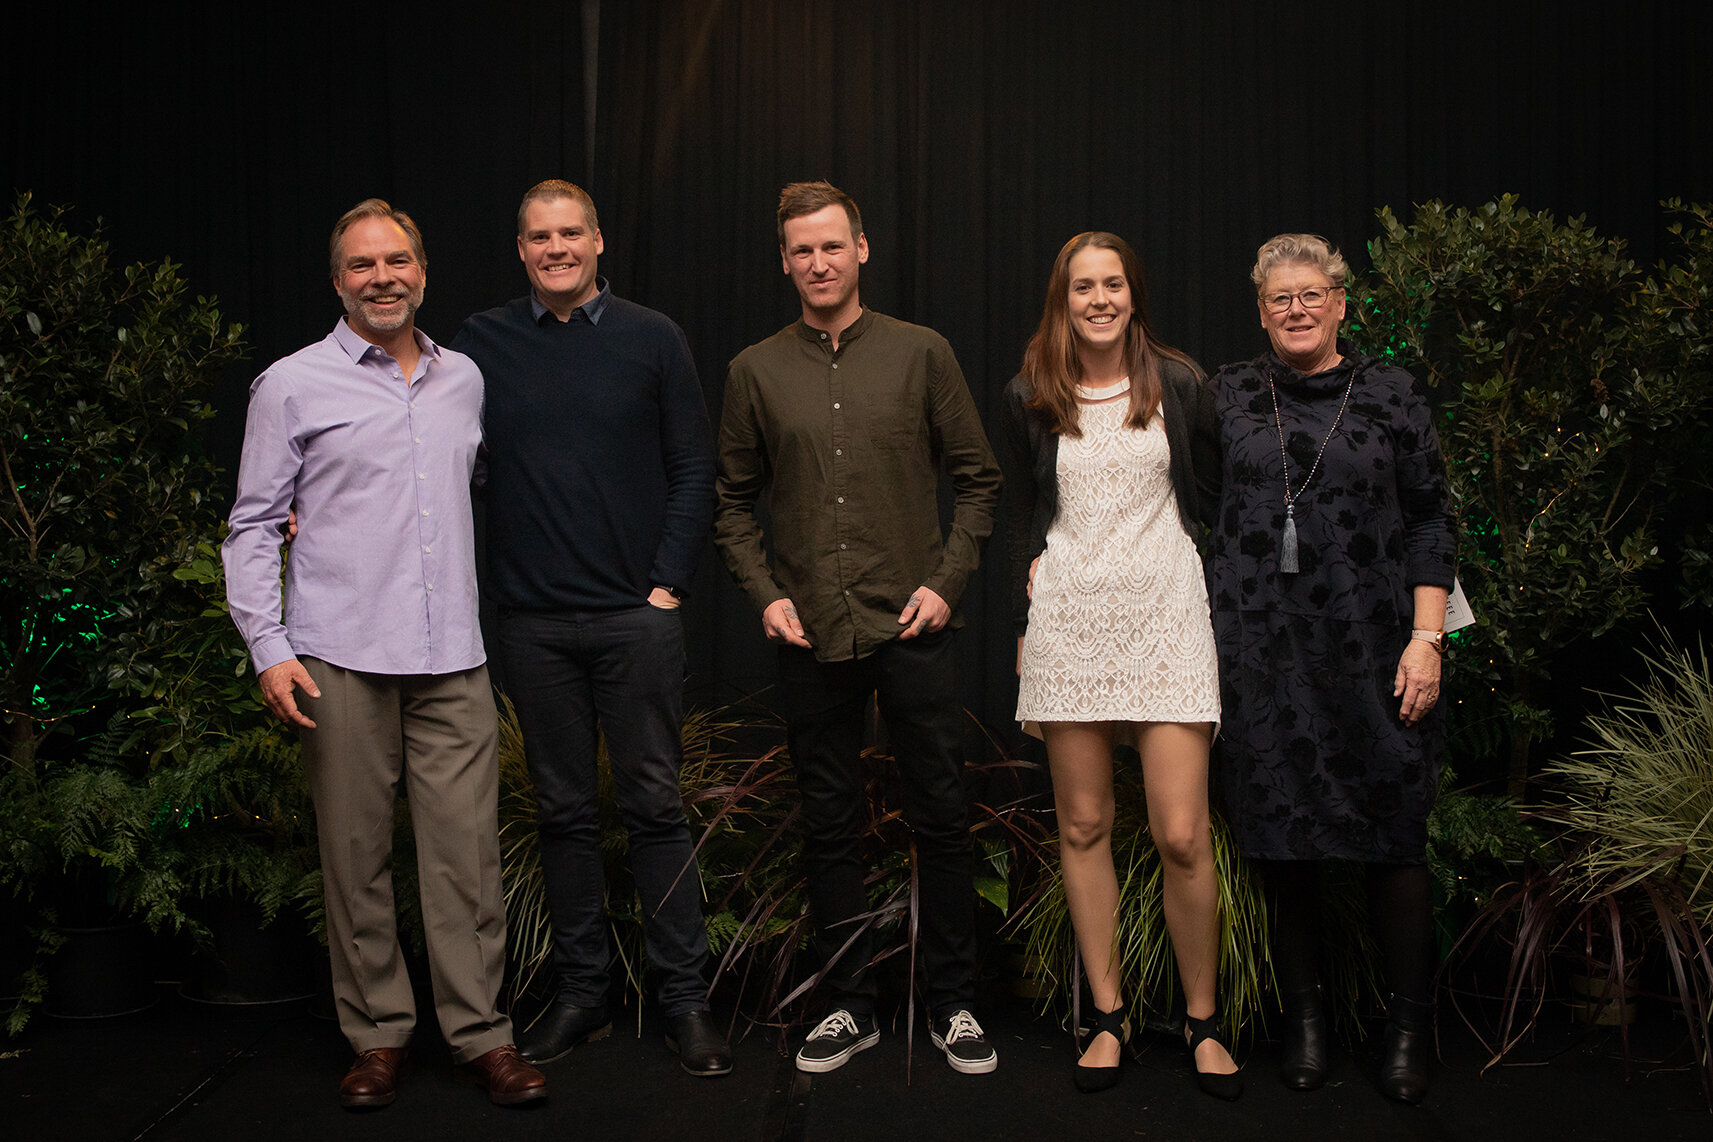 Pukekohe Cart for Best Marketing Initiative (1st Place) 2019 - From left to right: Director Jol Glover, Jono Ziesler, Jesse Donnelly, Sarah Ziesler and Director Donna Ferrall.